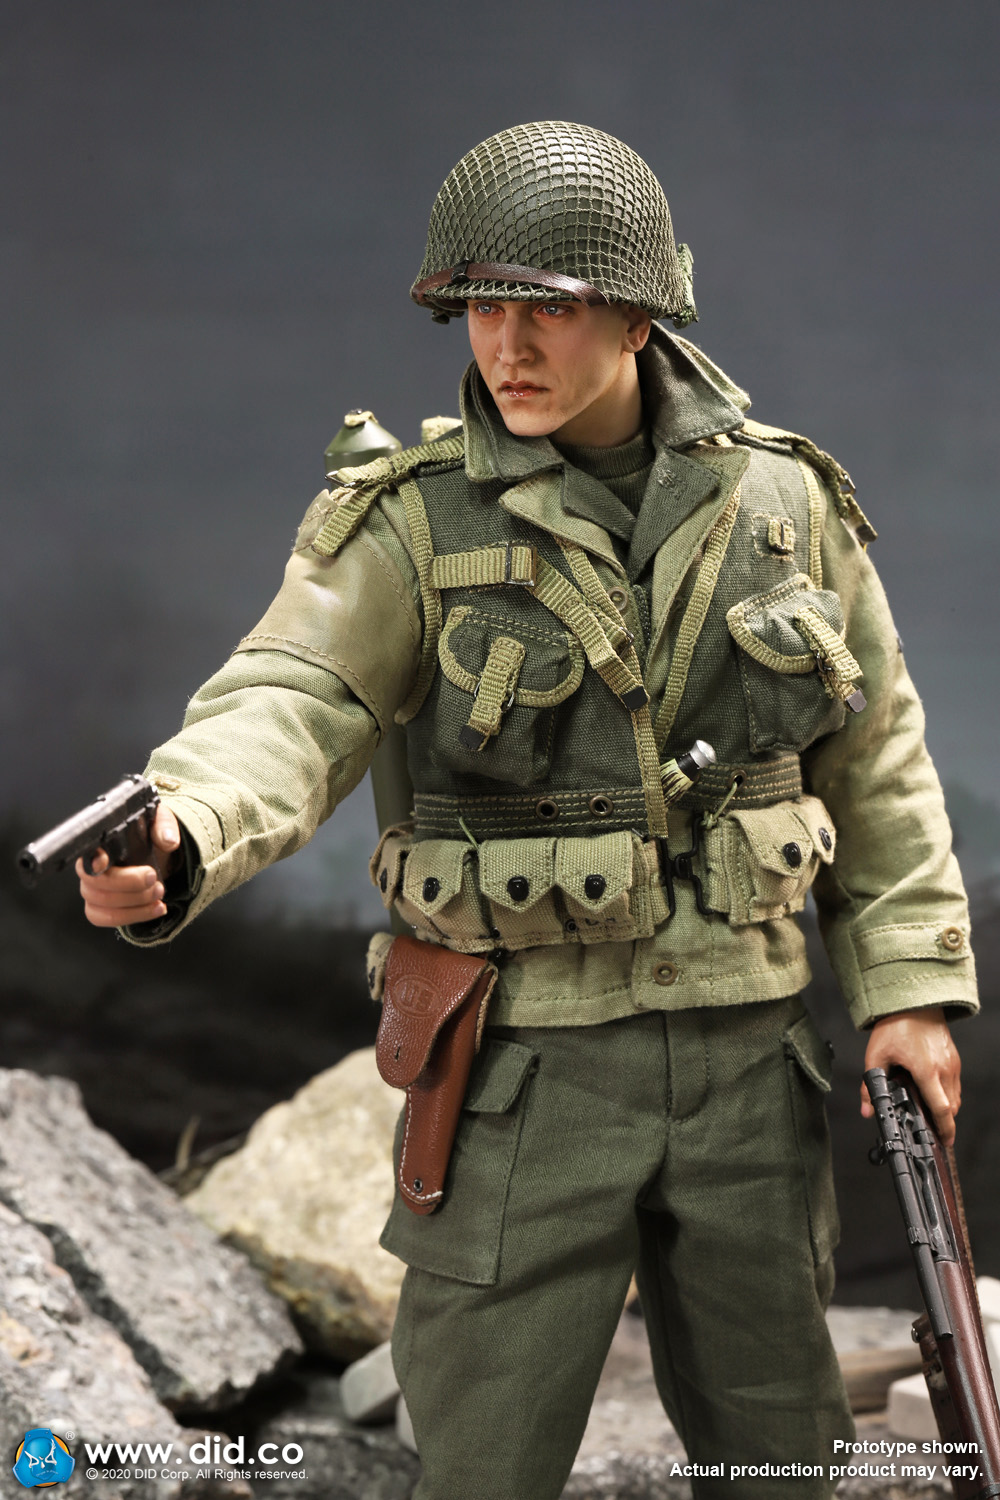 DiD - NEW PRODUCT: DiD: A80144 WWII US 2nd Ranger Battalion Series 4 Private Jackson 3919